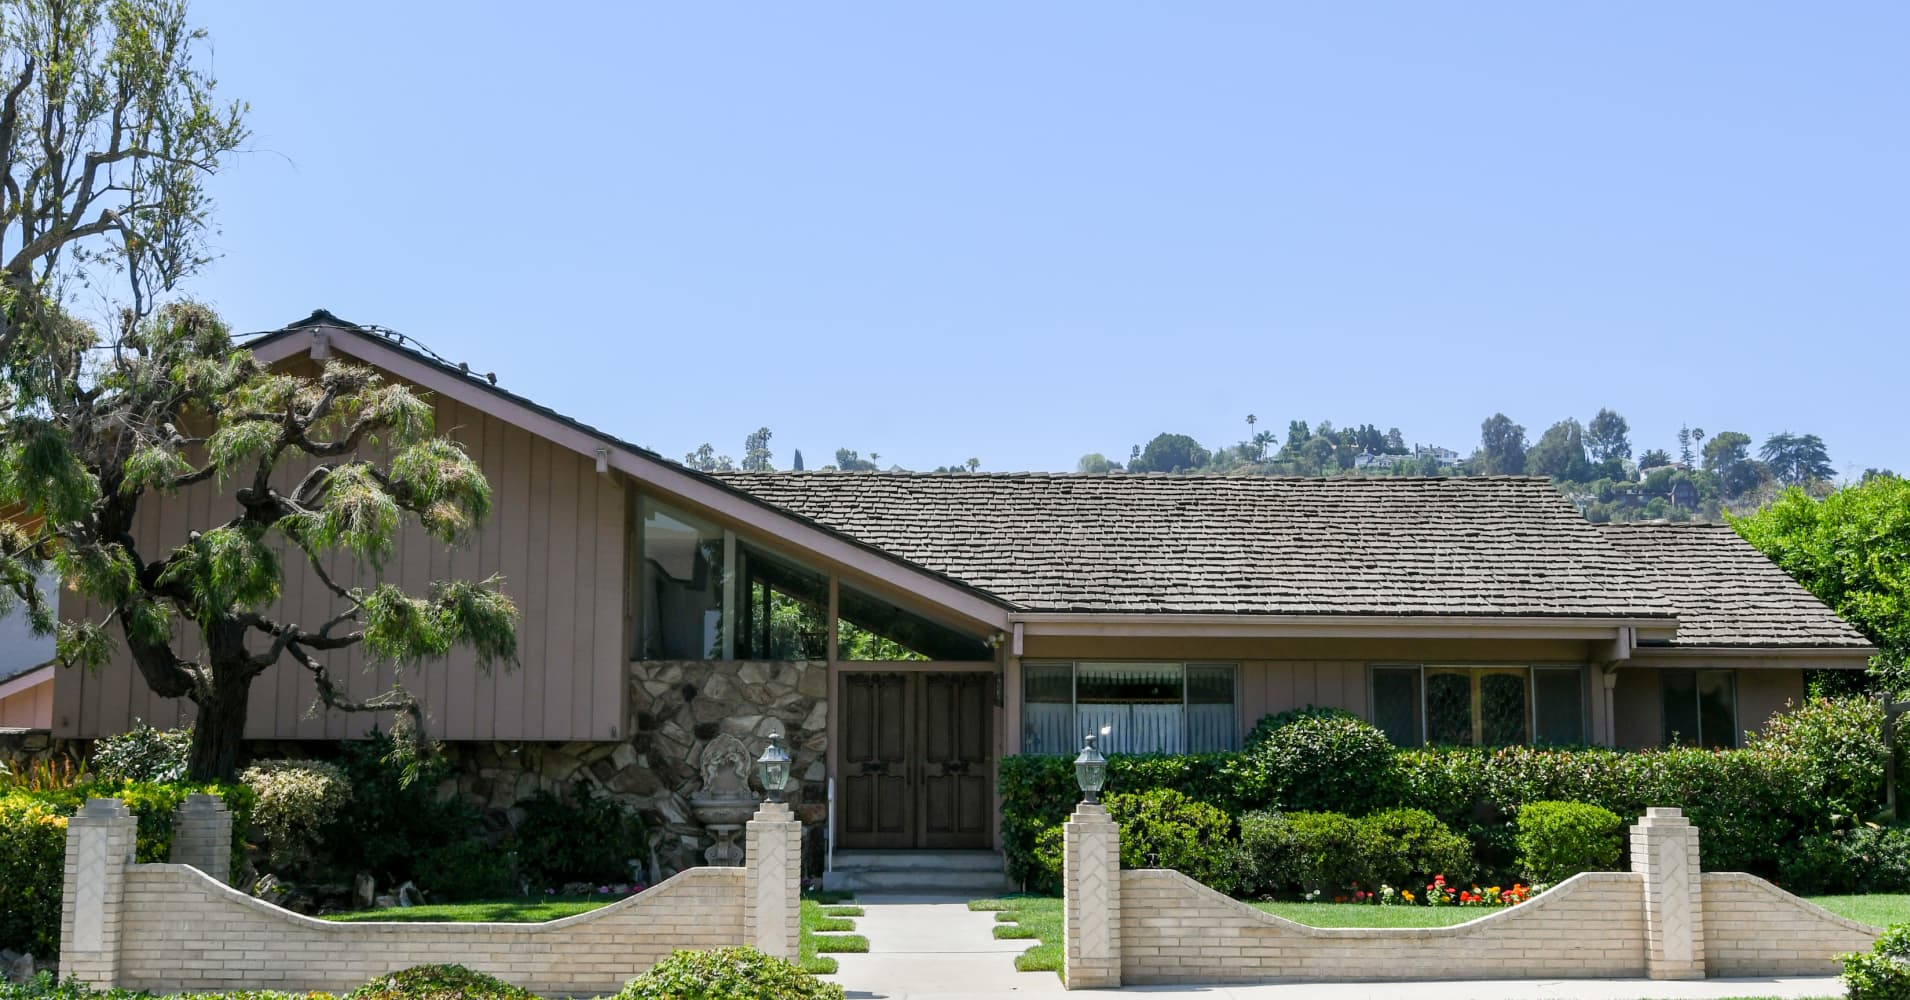 HGTV buys, plans to restore 'Brady Bunch' house and Lance Bass is cool with it